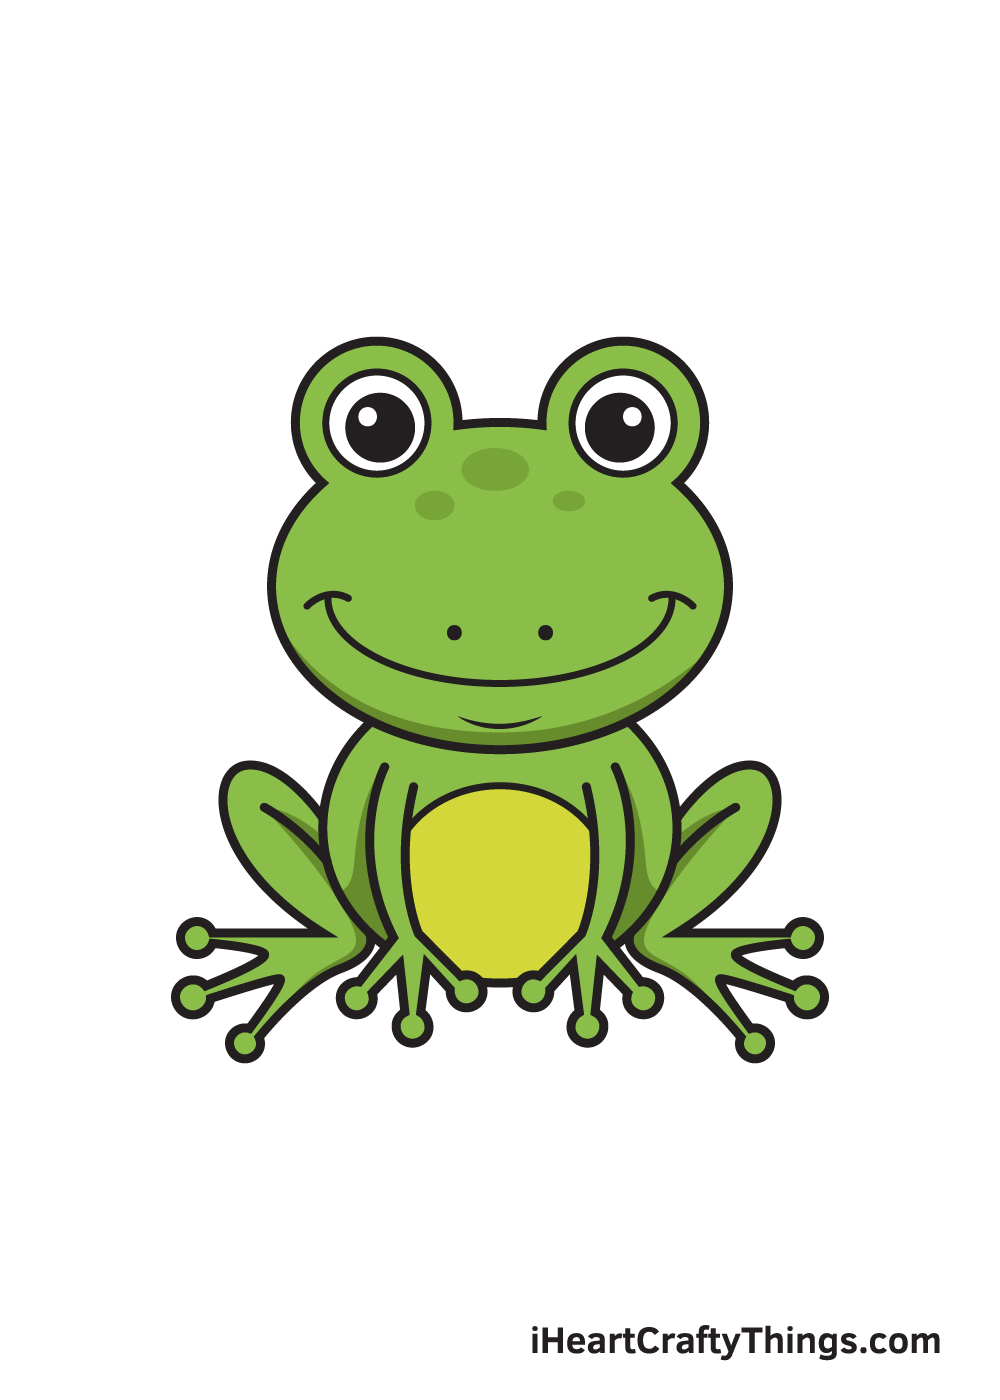 Frog Drawing – 9 Steps